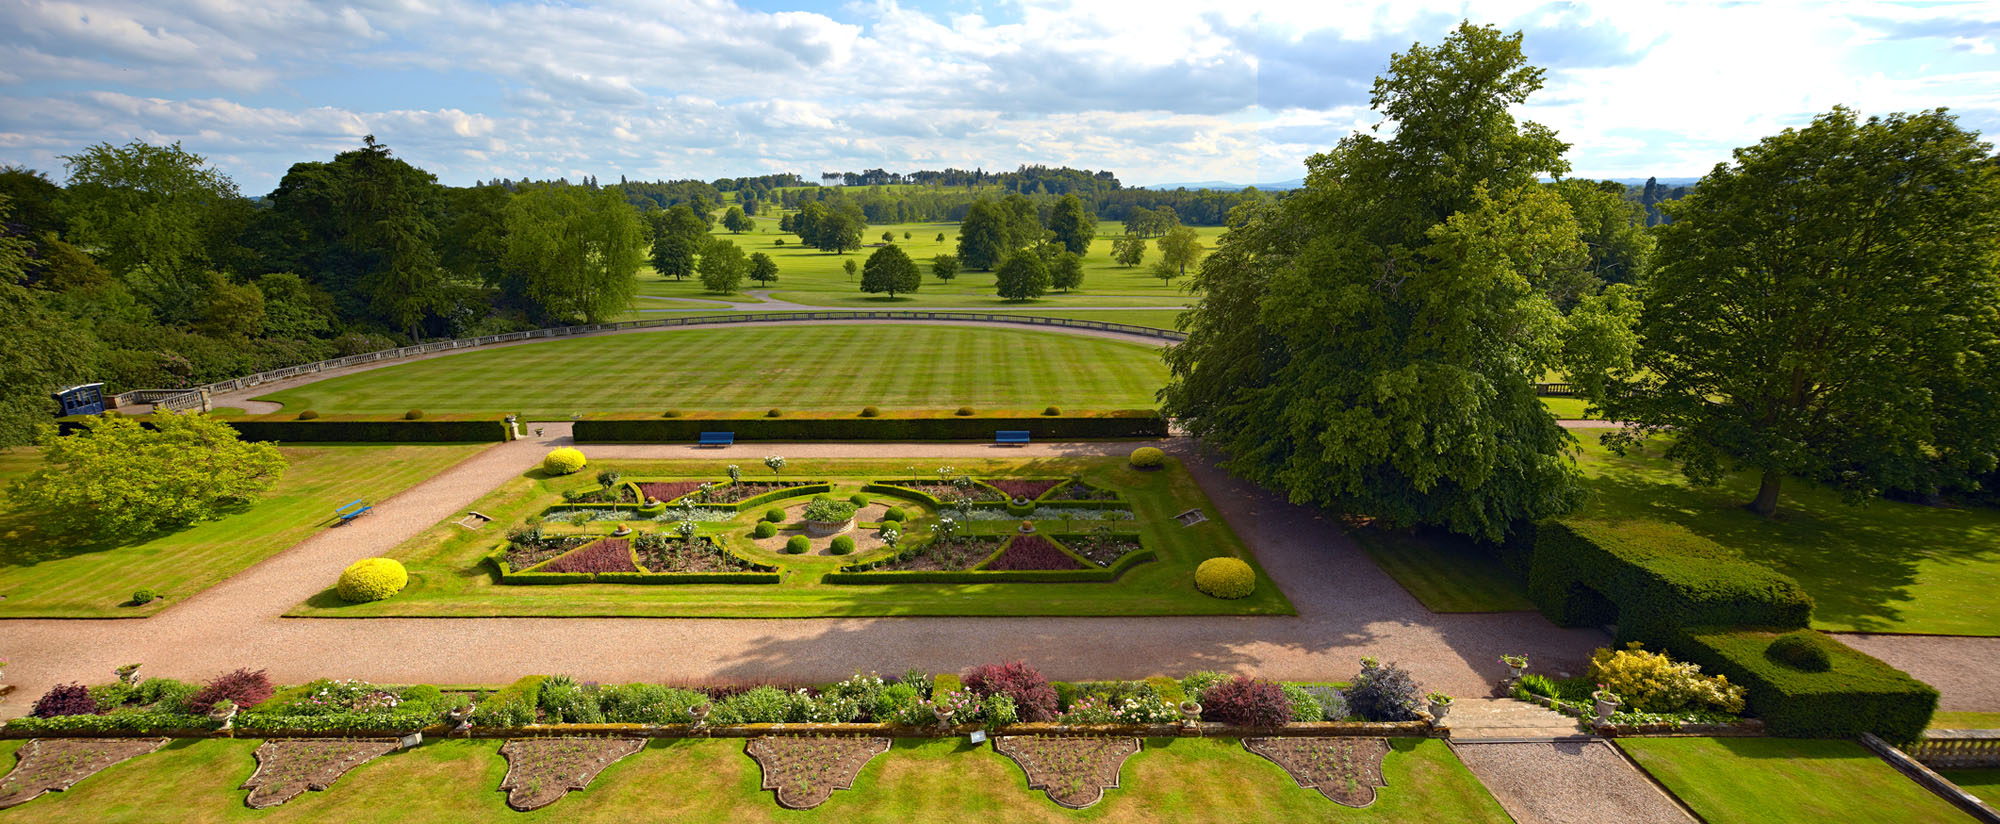 Learning From Stately Homes A Garden Of Eden